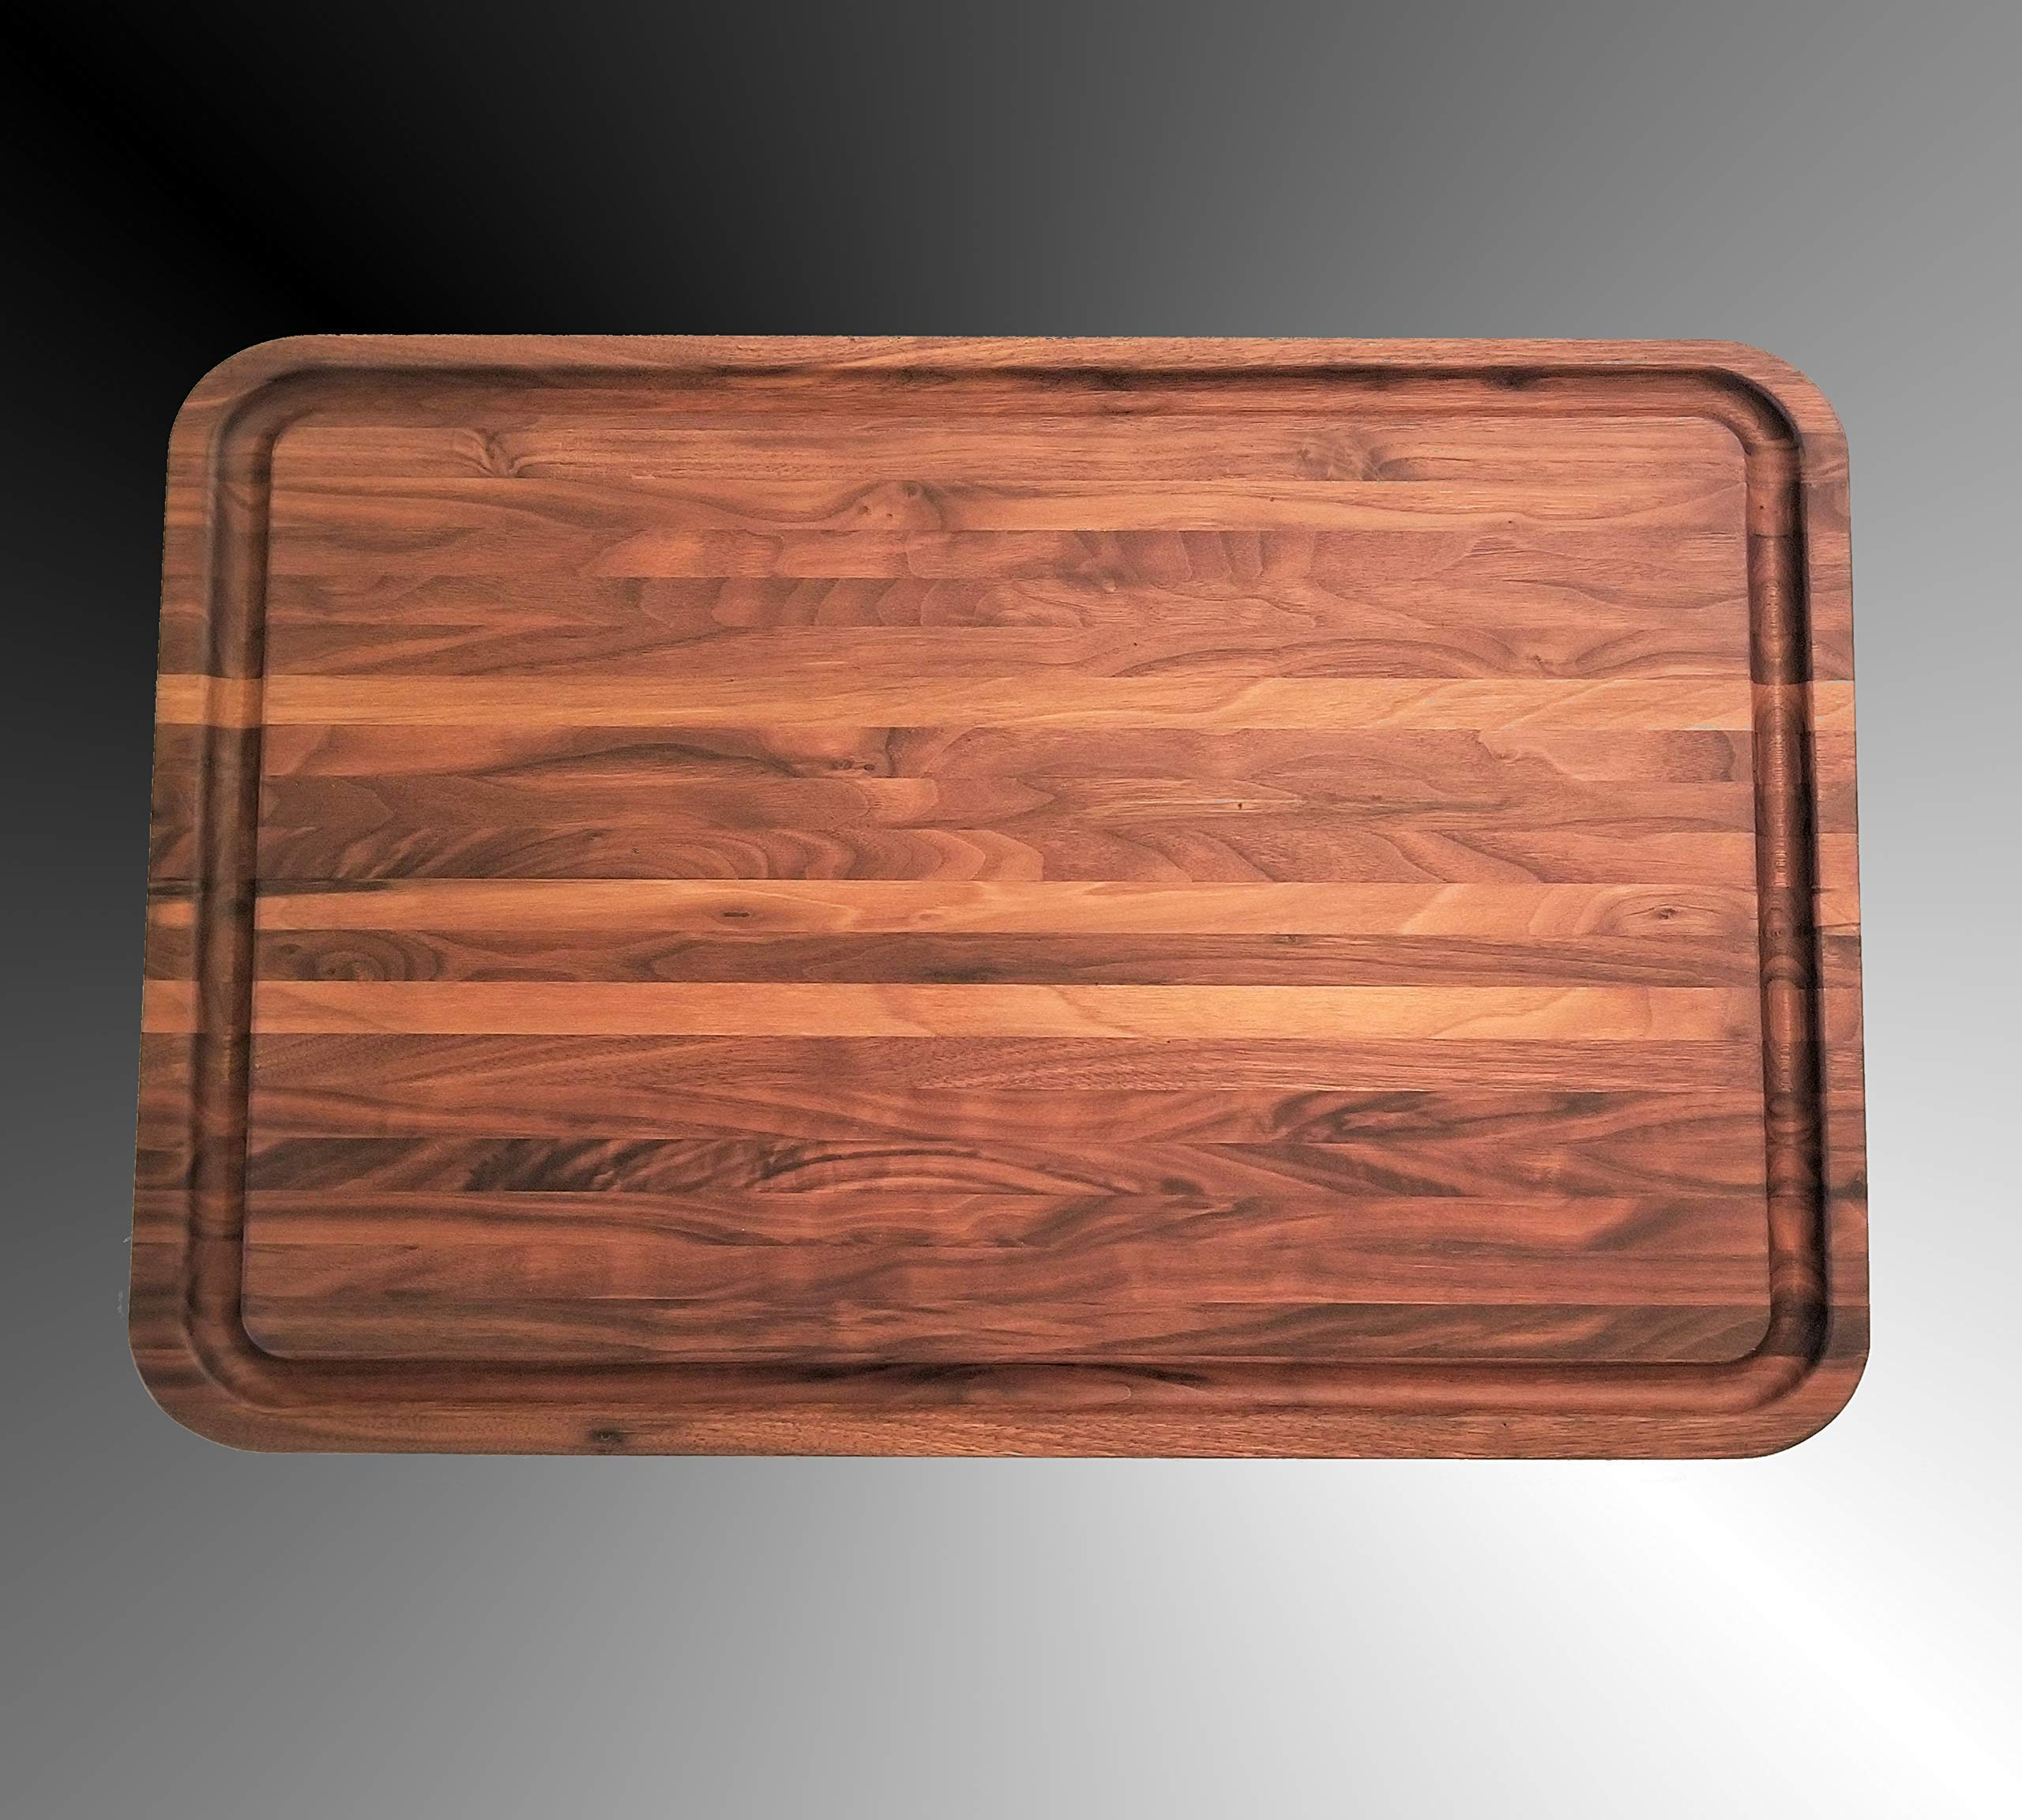 Walnut Cutting Board Extra Large Ovesize, 24 x 18 x 1.5 IN, Edge Grain, Reversible, Hardwood Chopping and Carving Countertop, Deep Well Juice Groove, Handmade by Pacific Wood In the USA.